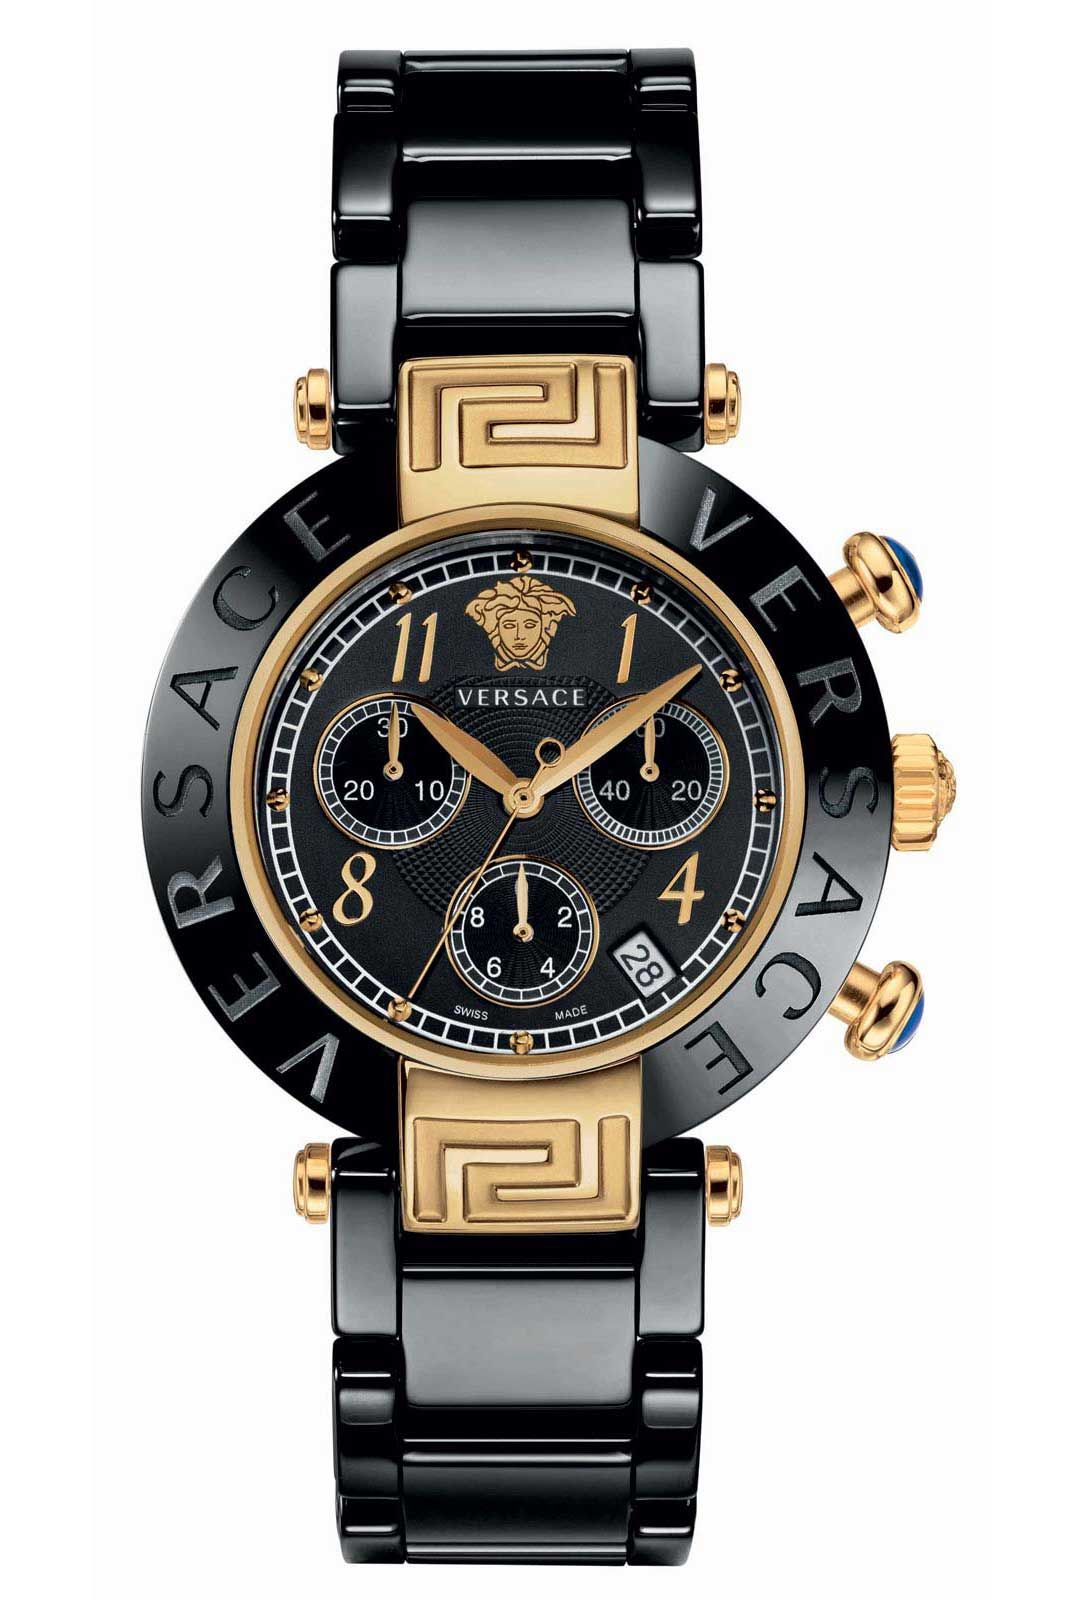 VERSACE REVE CHRONO CERAMIC 40mm IN BLACK CERAMIC AND YELLOW GOLD ... 2c9ed51ed0